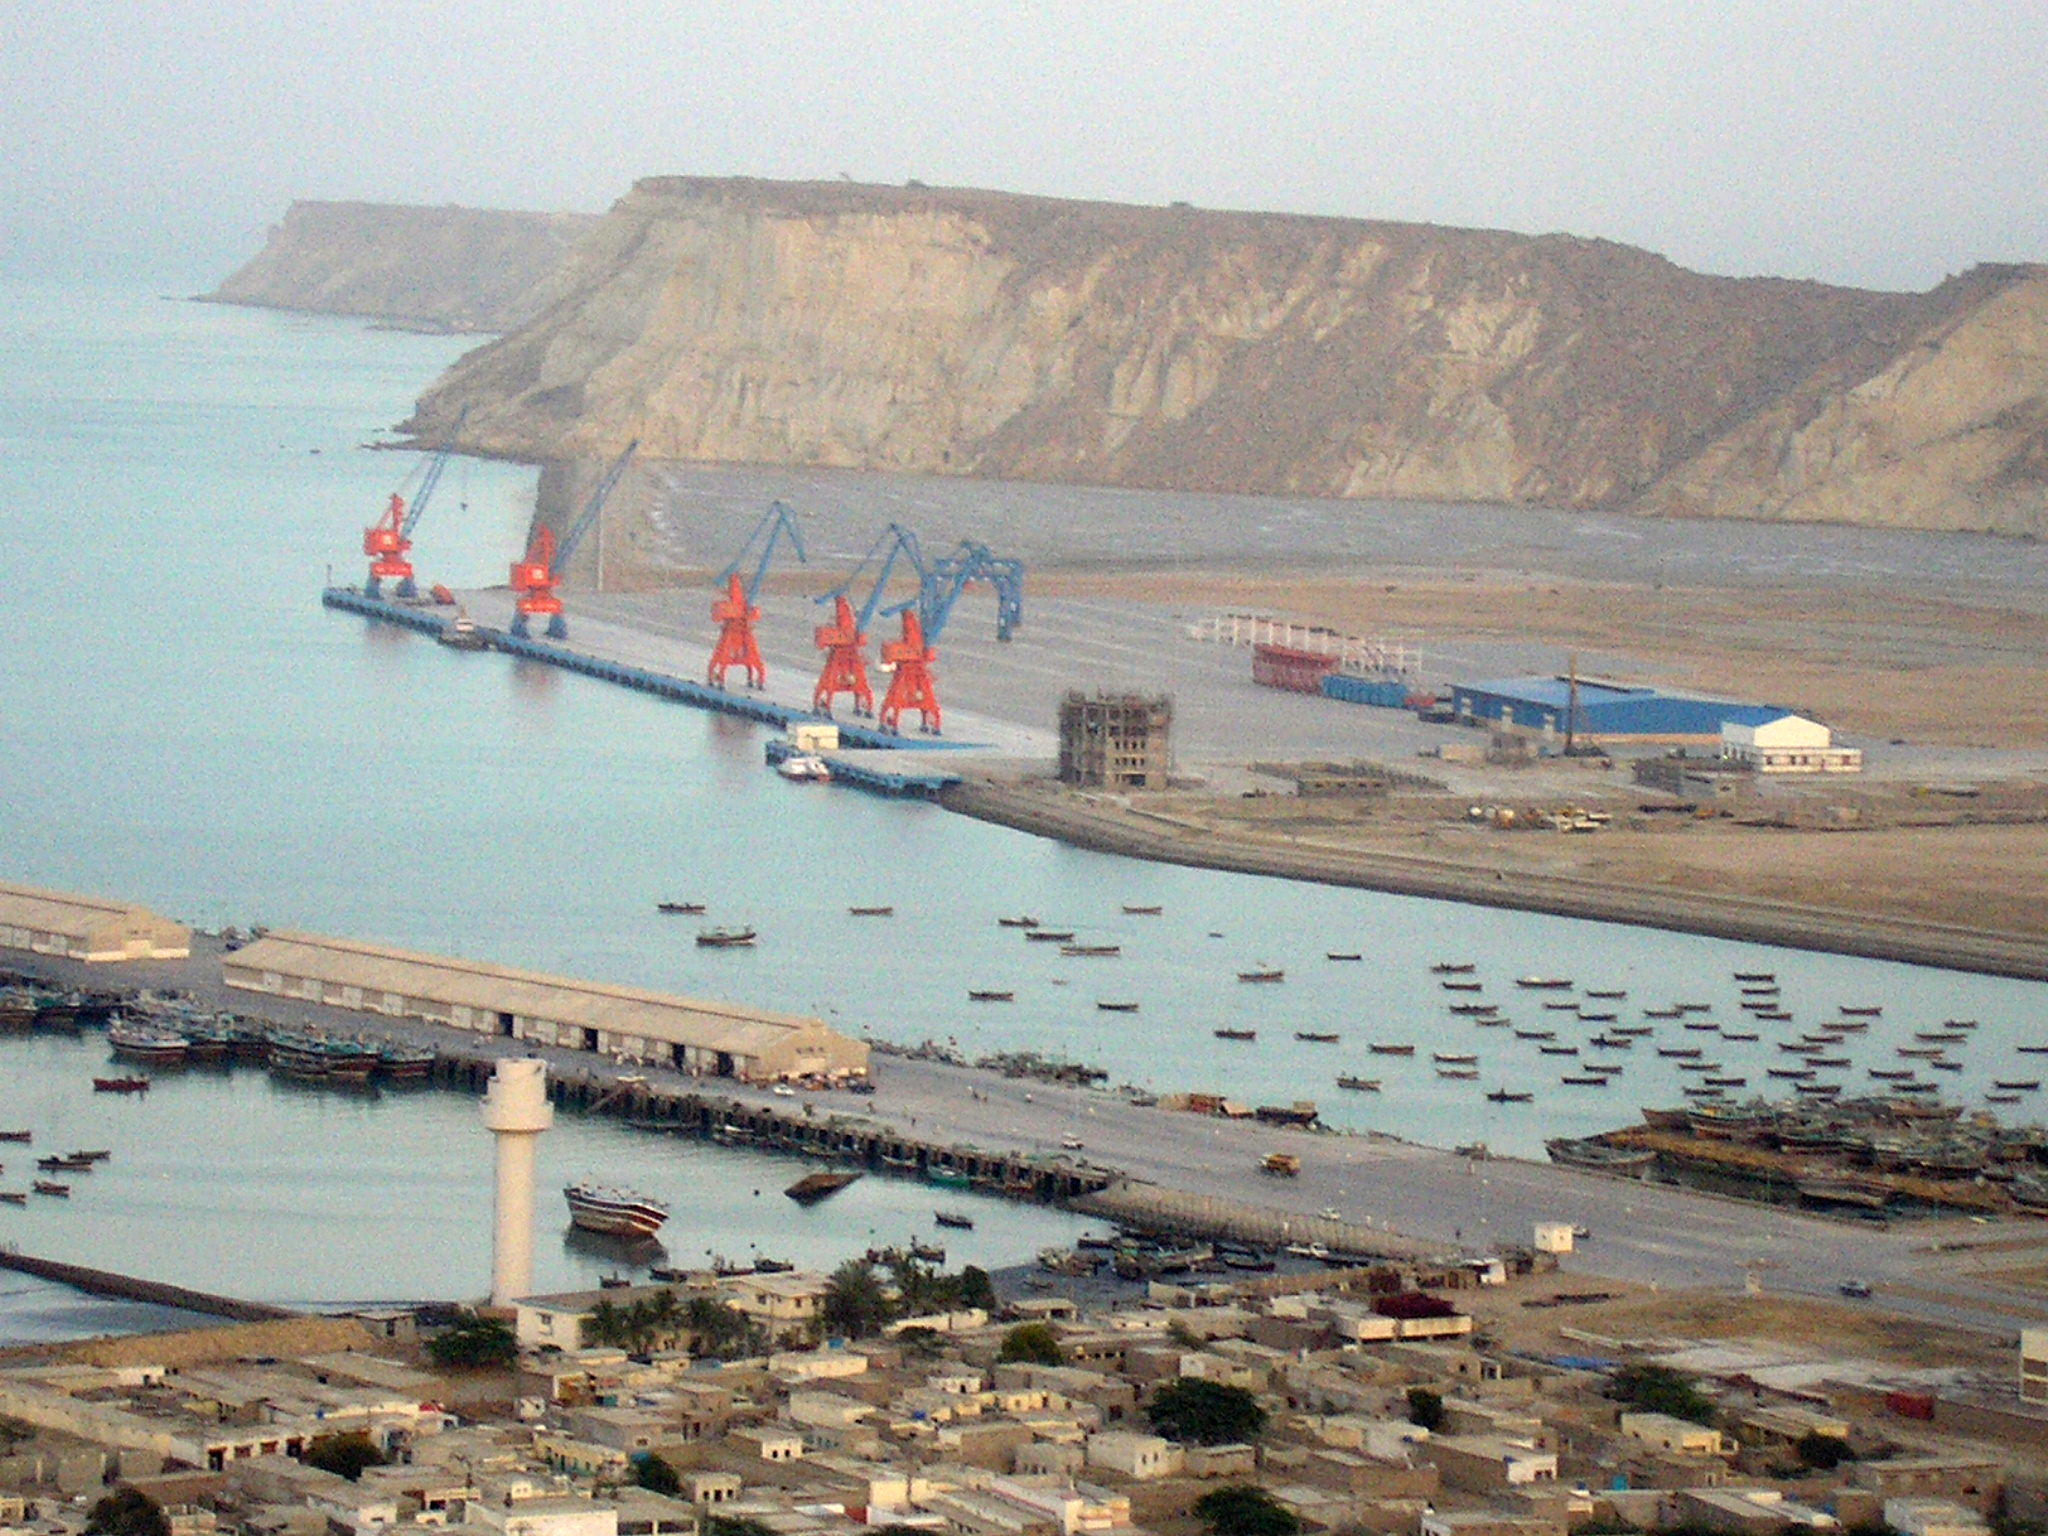 Photograph of Gwadar Port